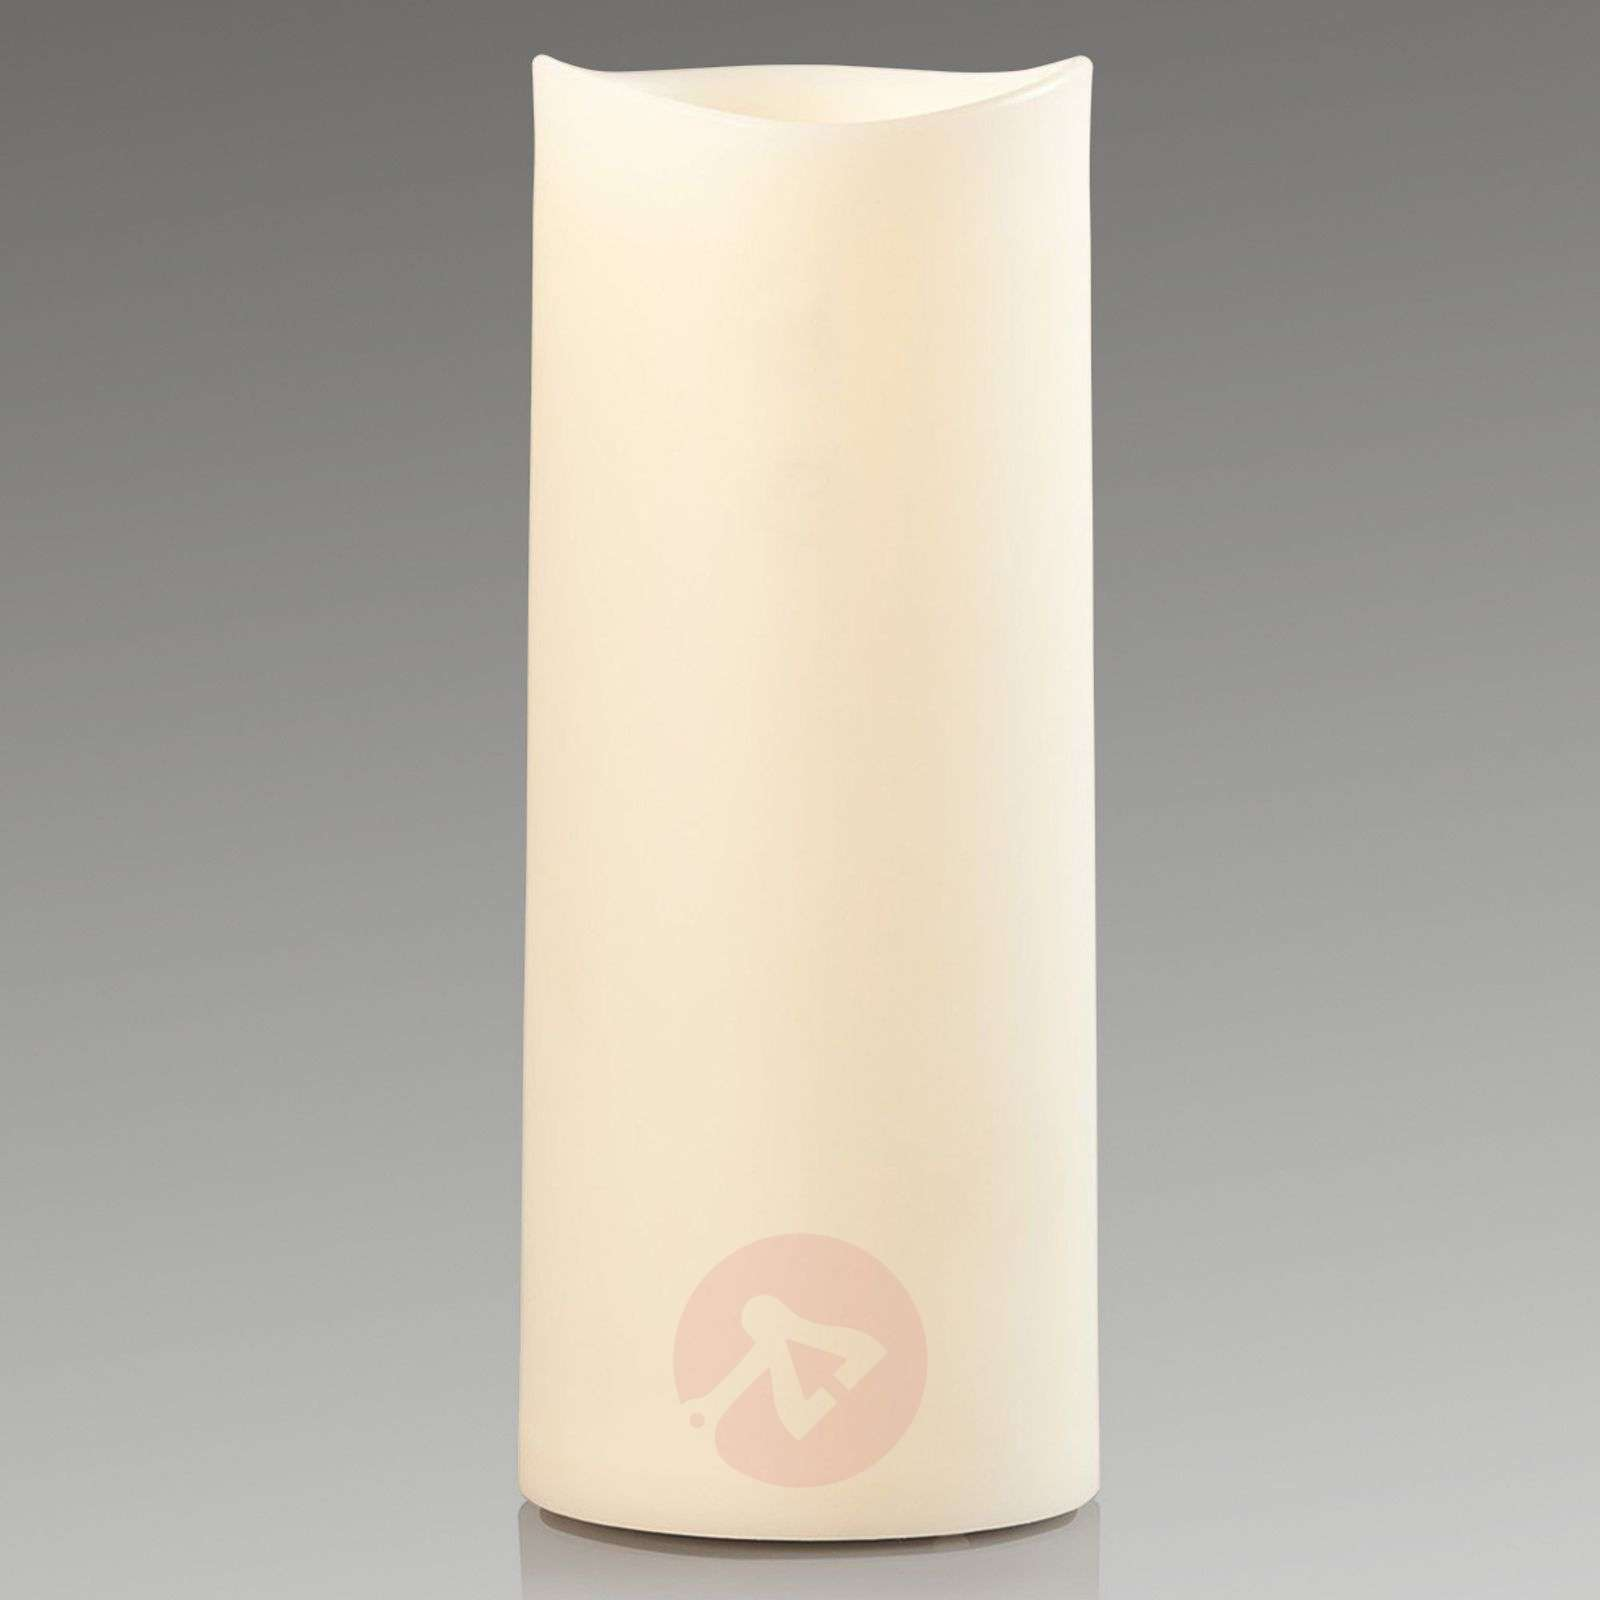 LED-decolicht Outdoor Candle 22 cm-8507585-01